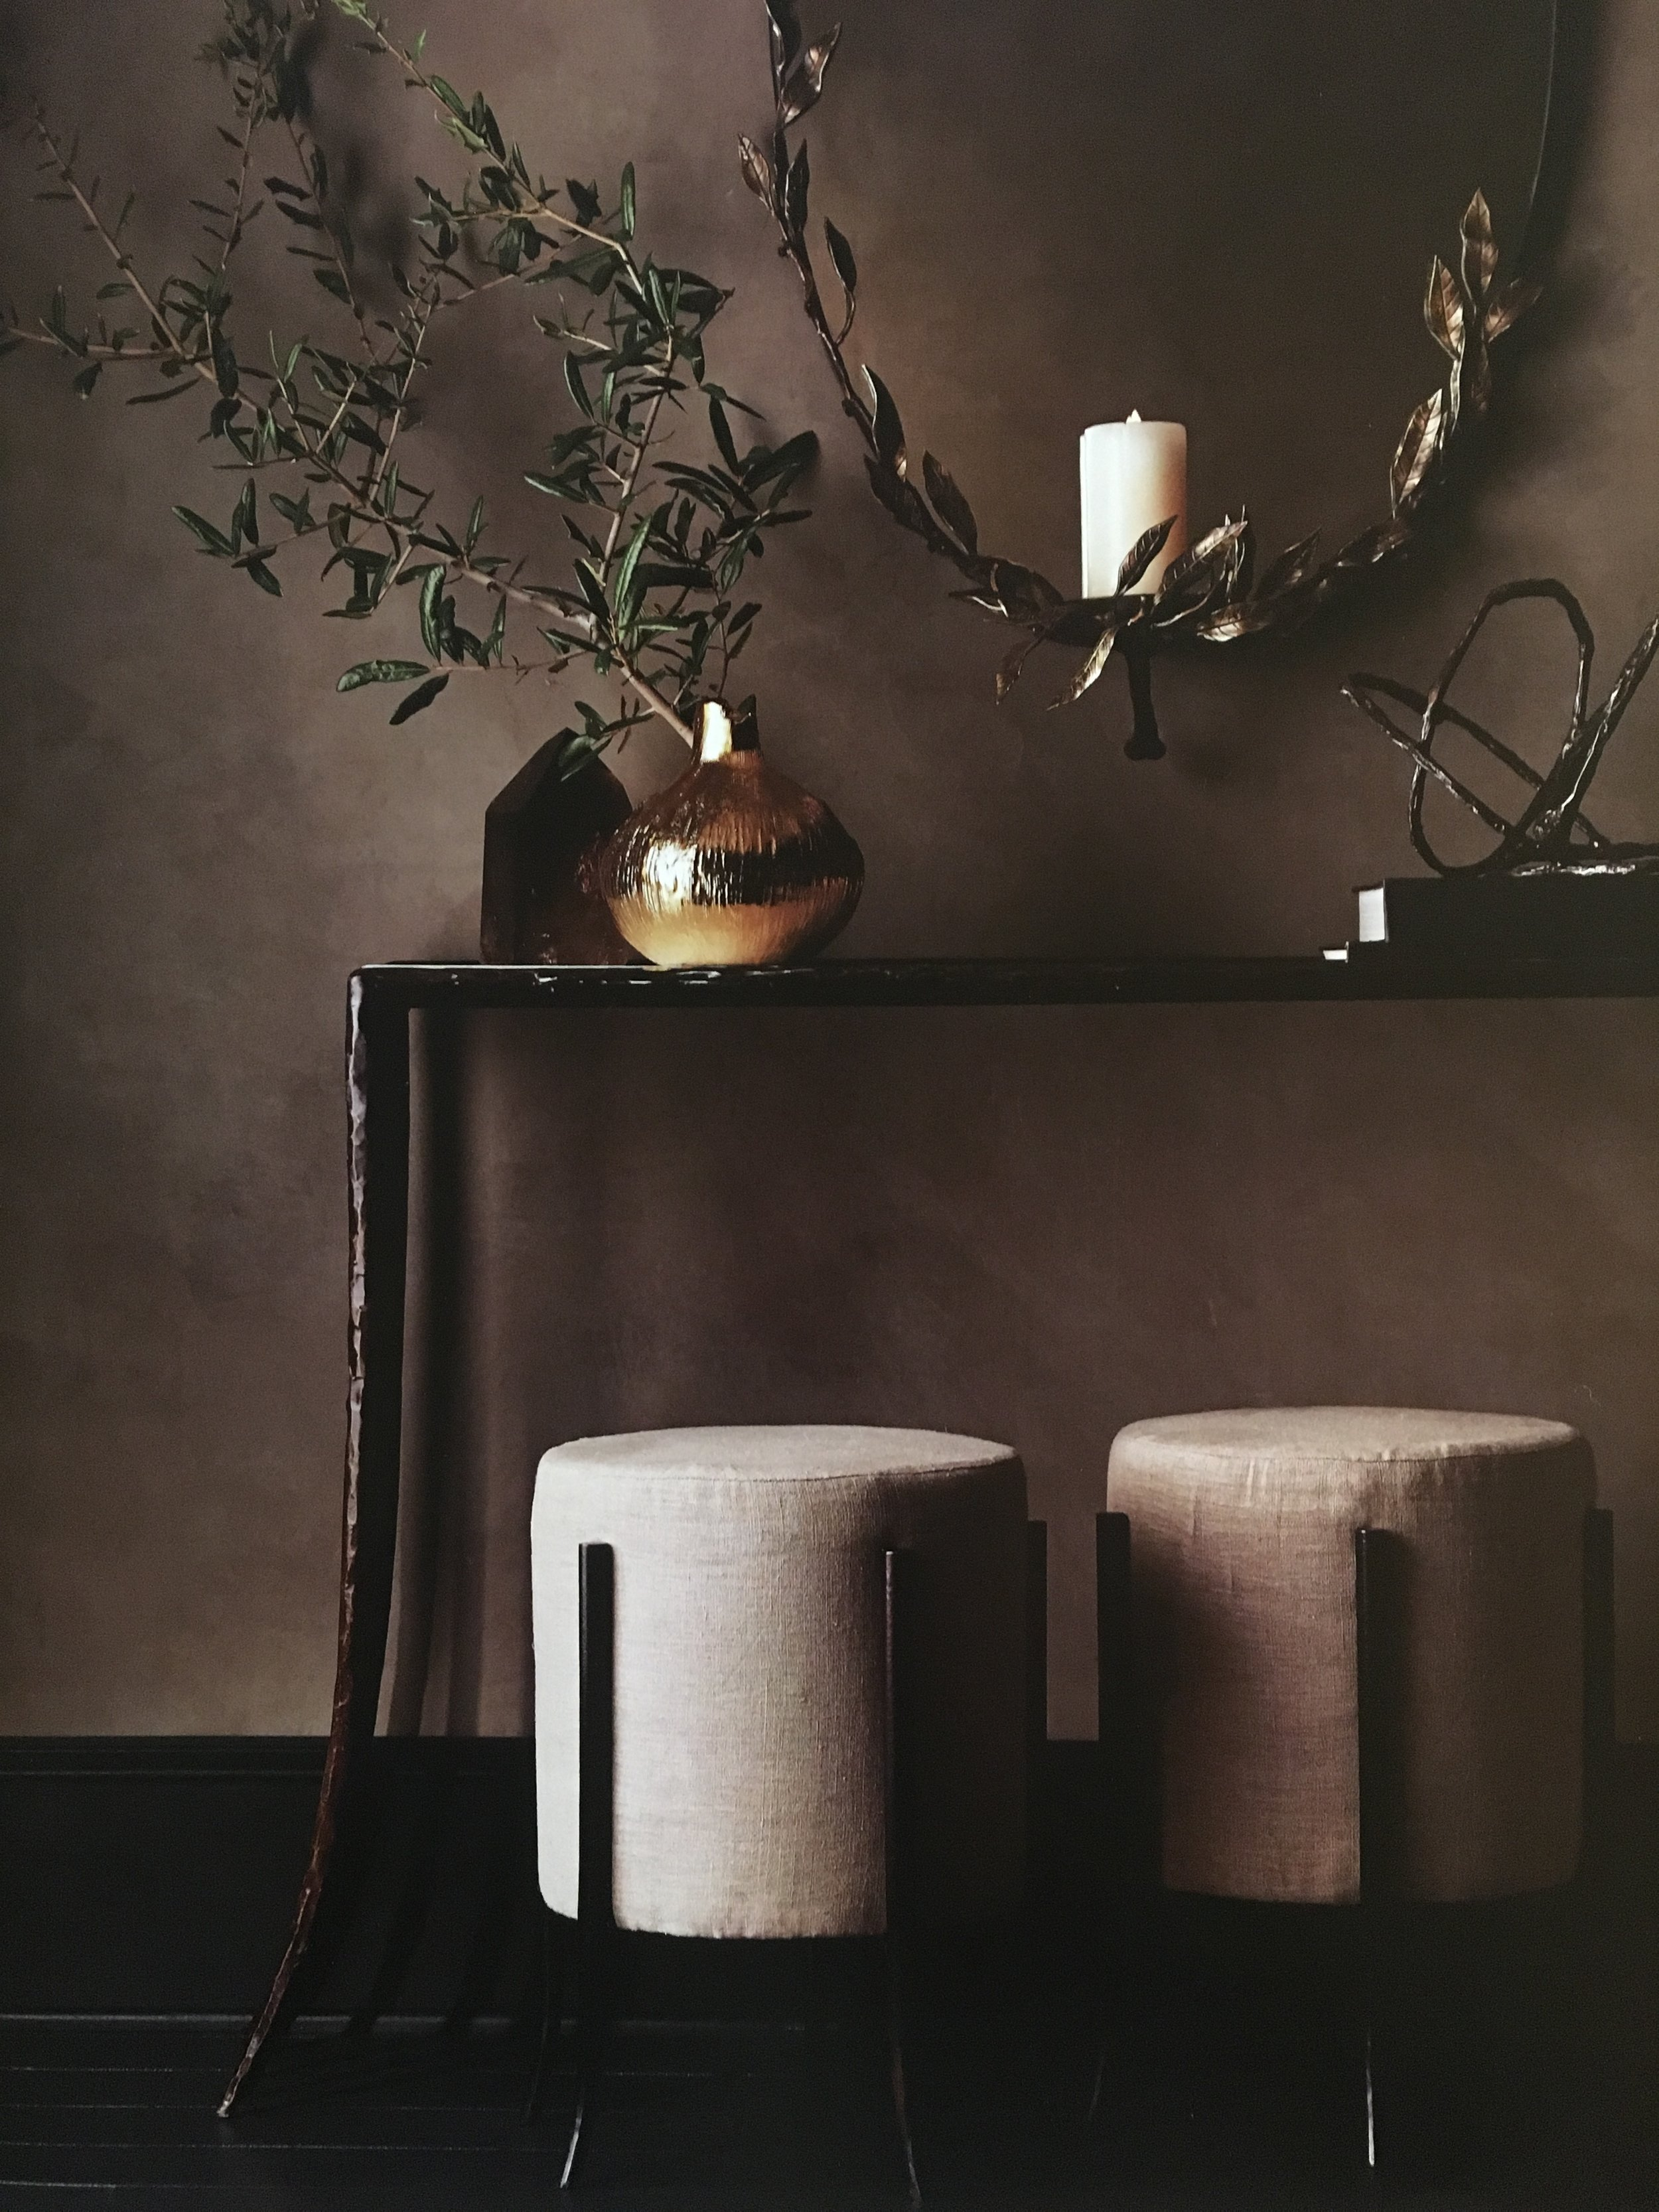 TOUCHES OF LINEN, BURLAP AND OTHER NATURAL MATERIALS WERE ADDED TO THE MIX TO BRING WARMTH AND HARMONY THROUGHOUT